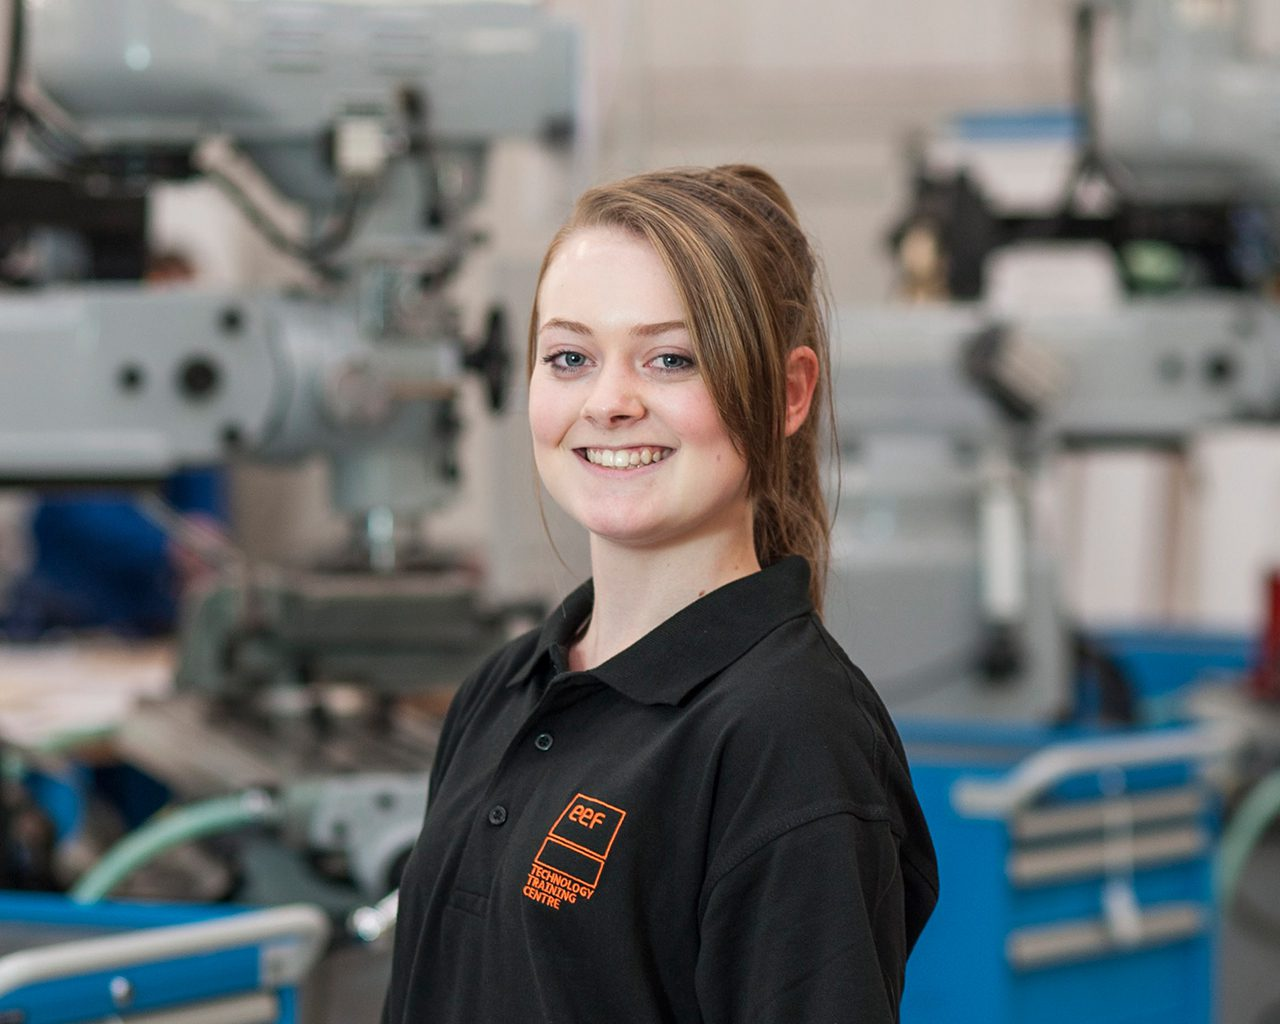 Apprenticeships and mentoring are key to getting more women into engineering